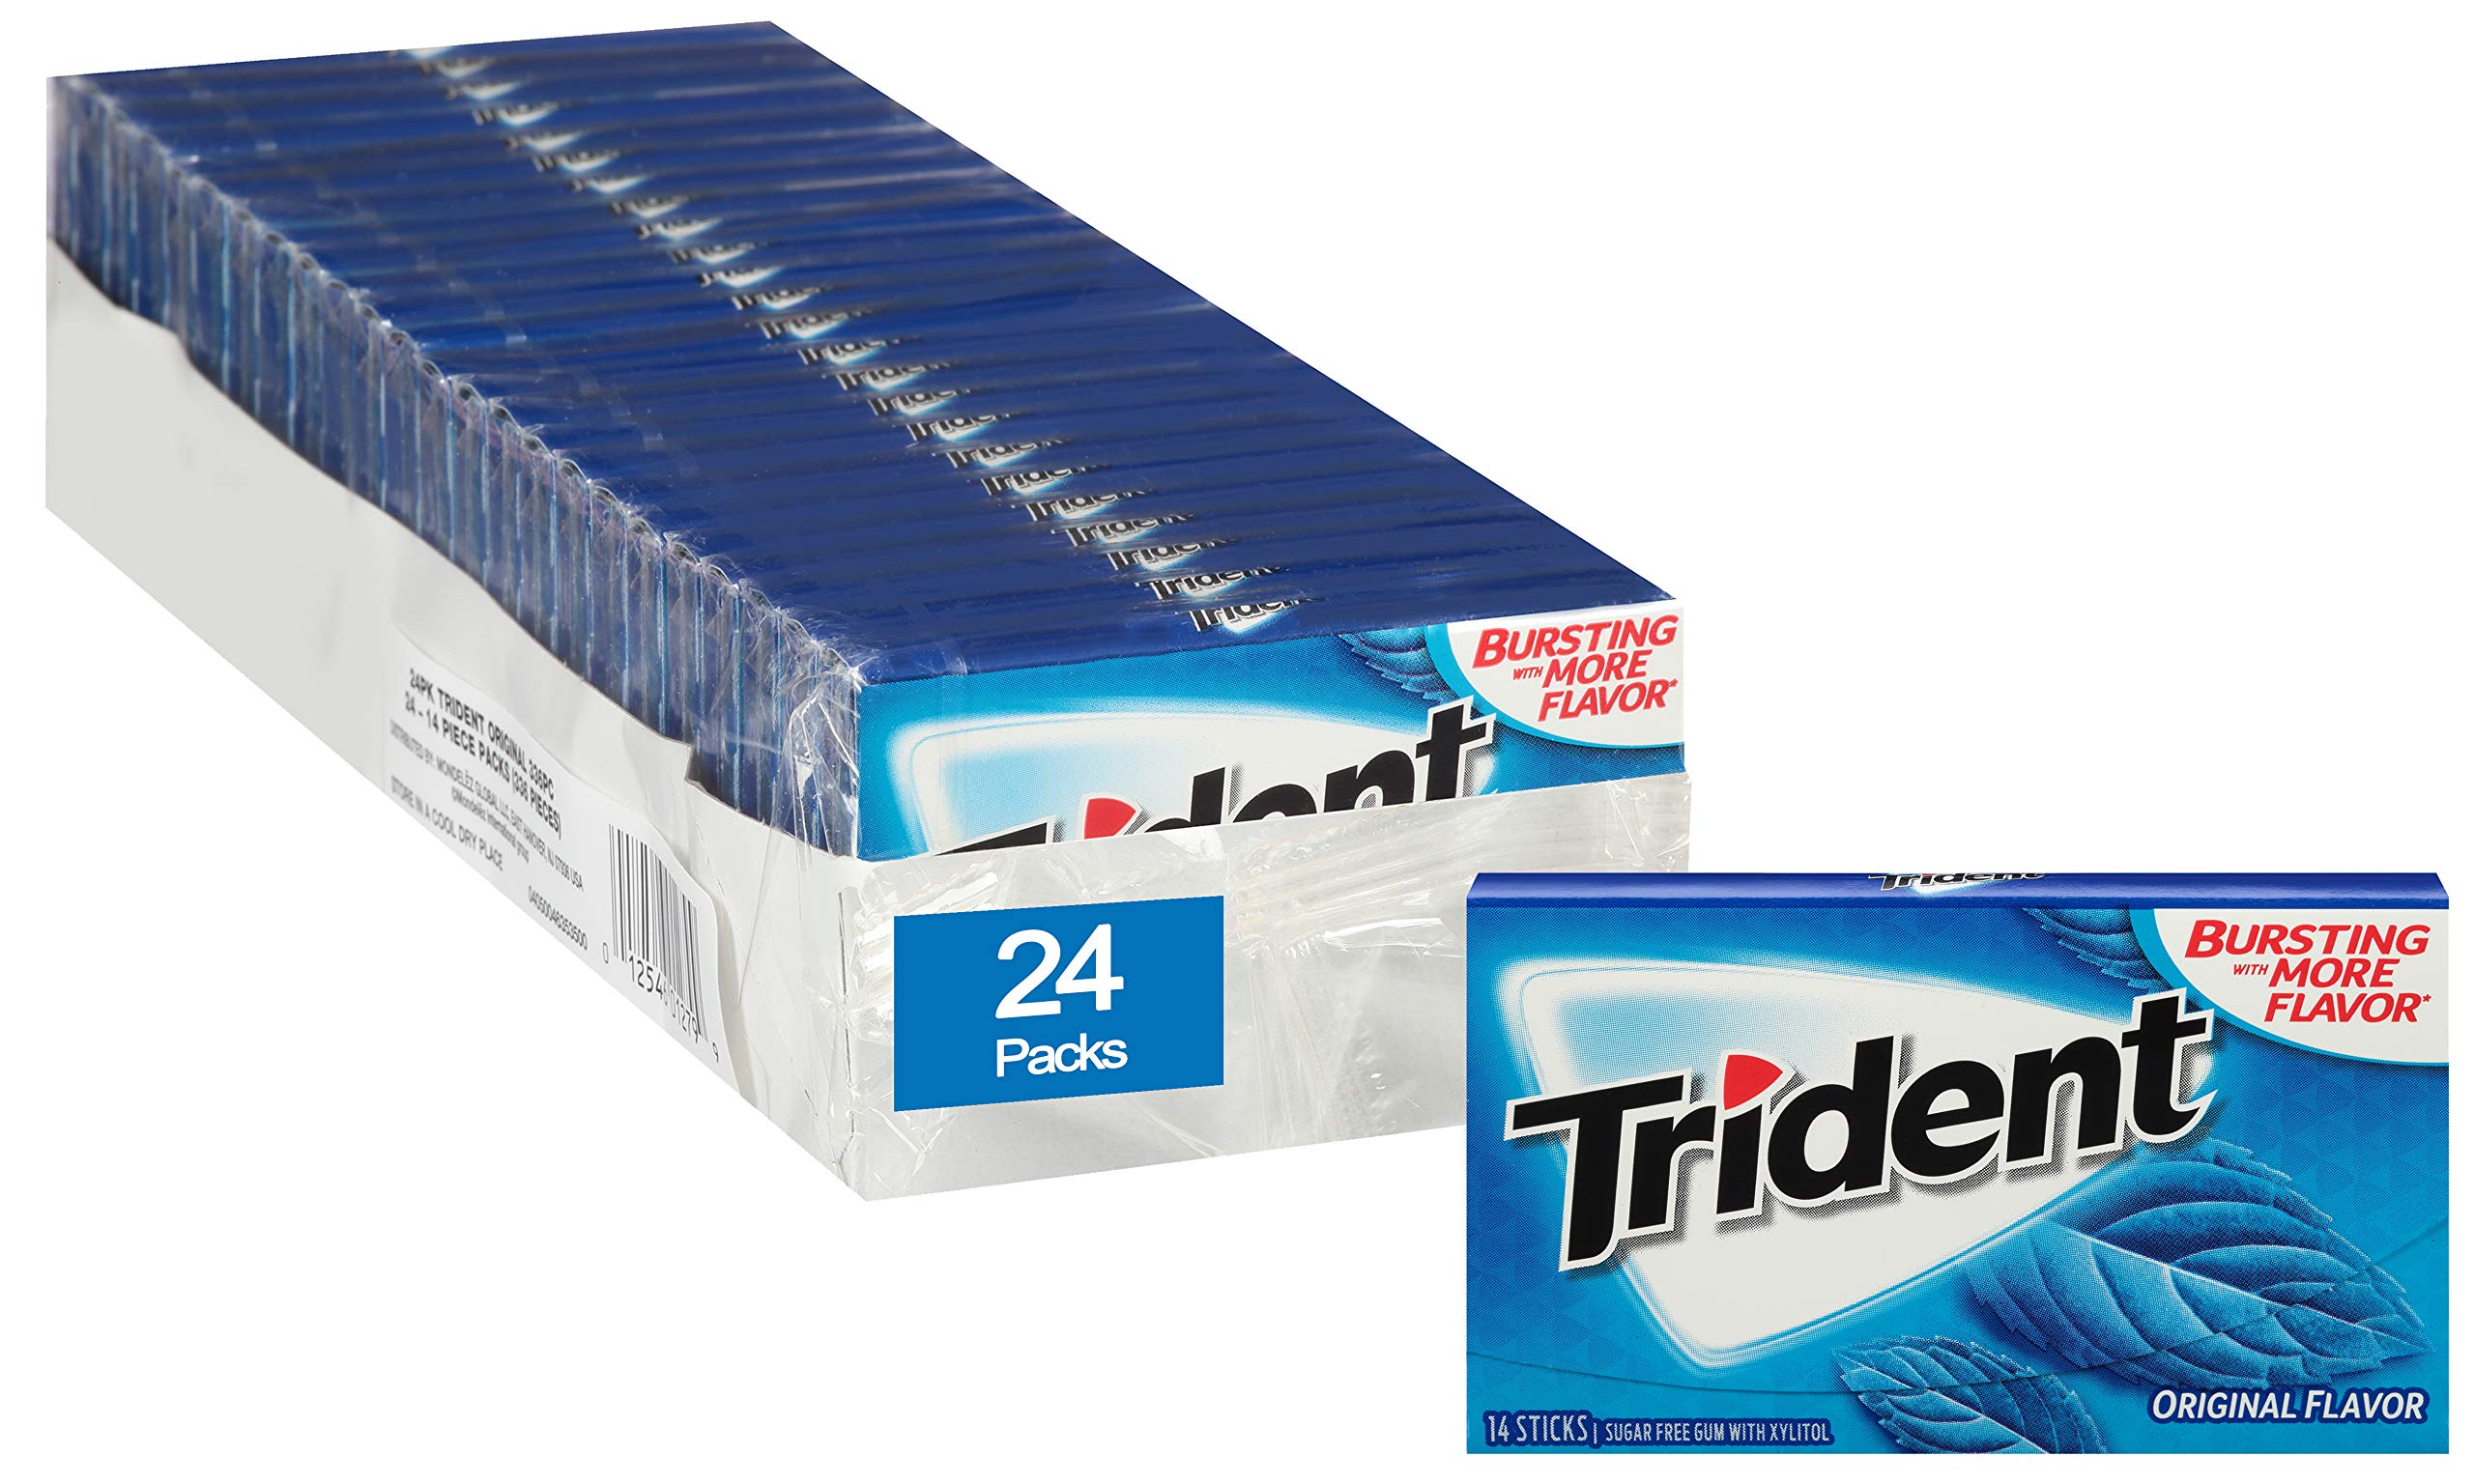 Trident Sugar Free Gum Original, 14 piece pack (24 Packs) by Trident (Image #3)